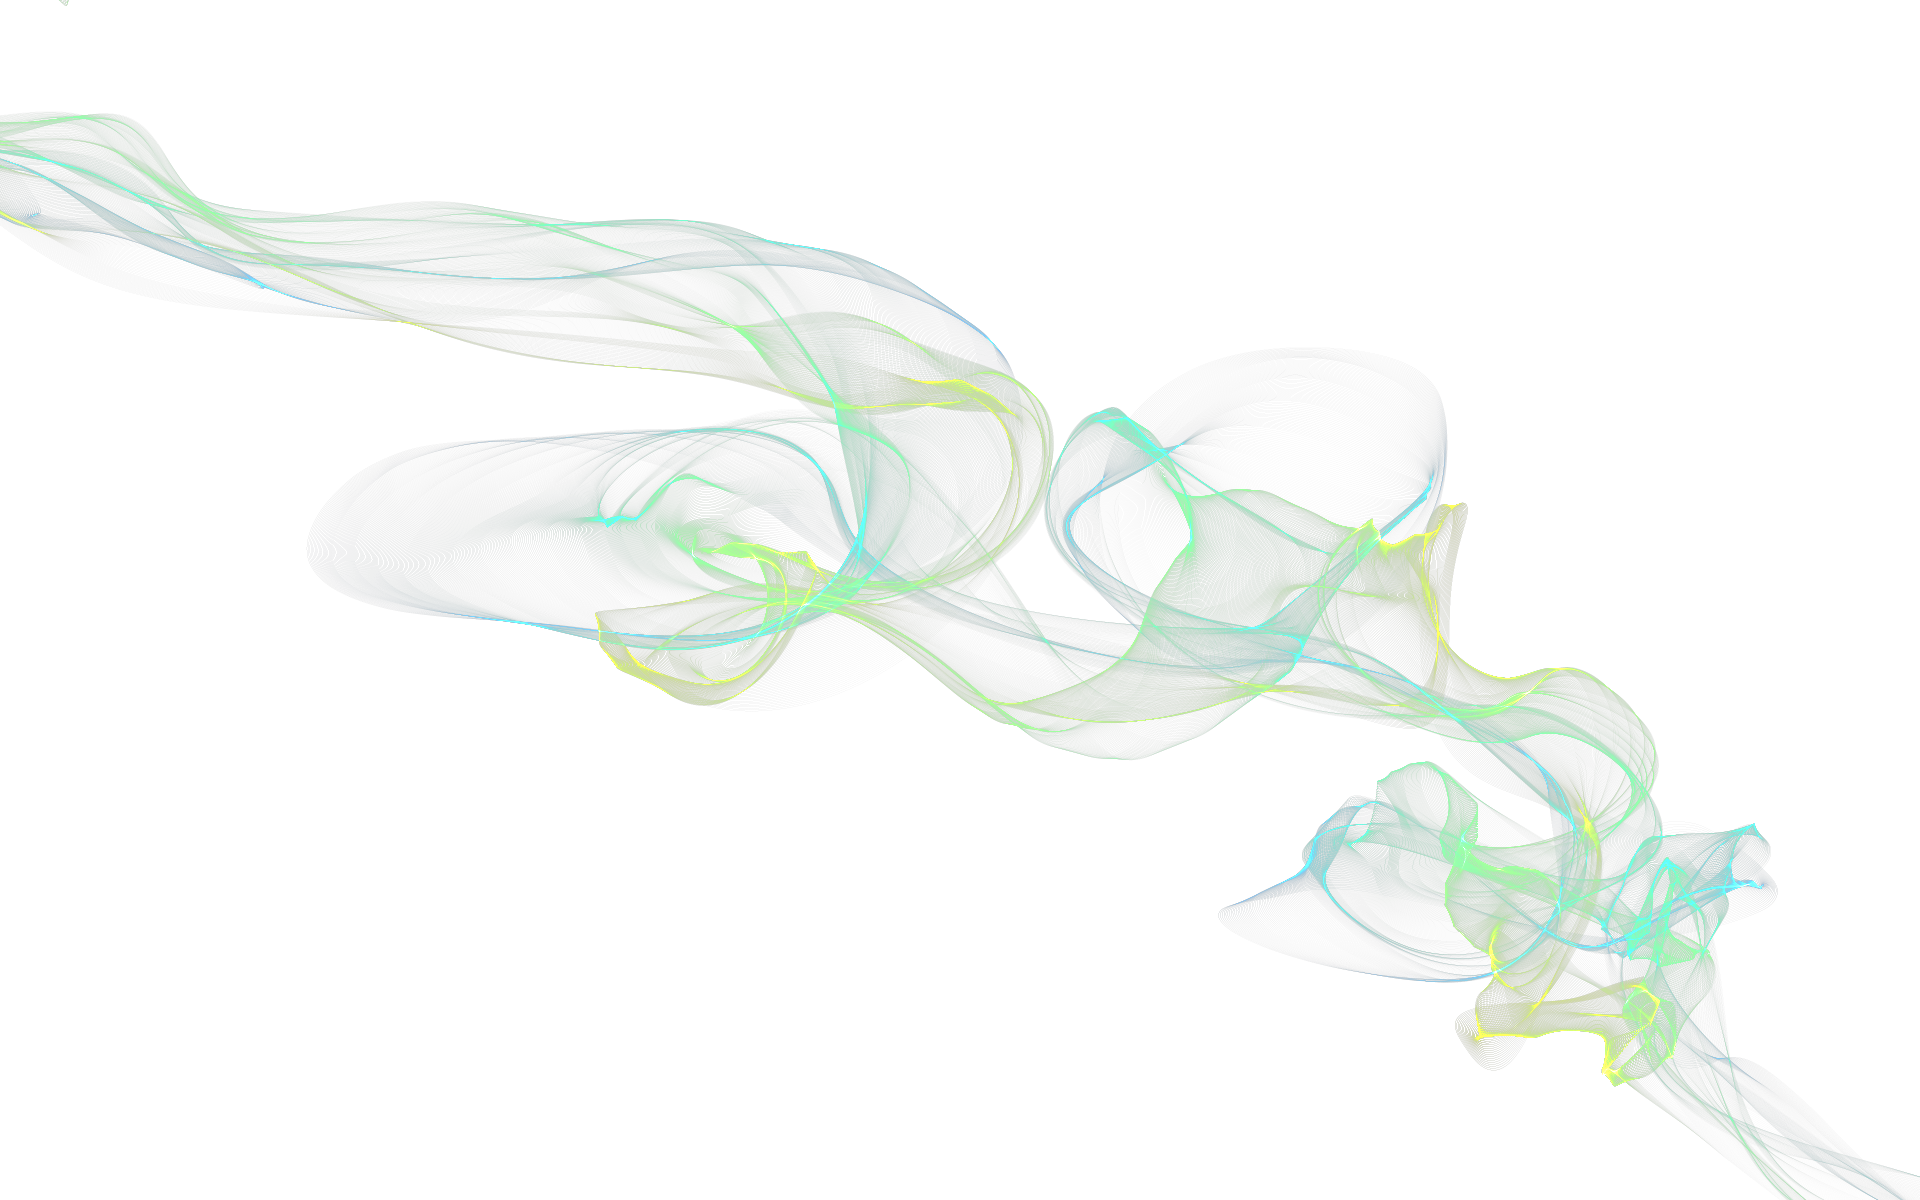 Free icons and backgrounds. Abstract green png graphic royalty free download